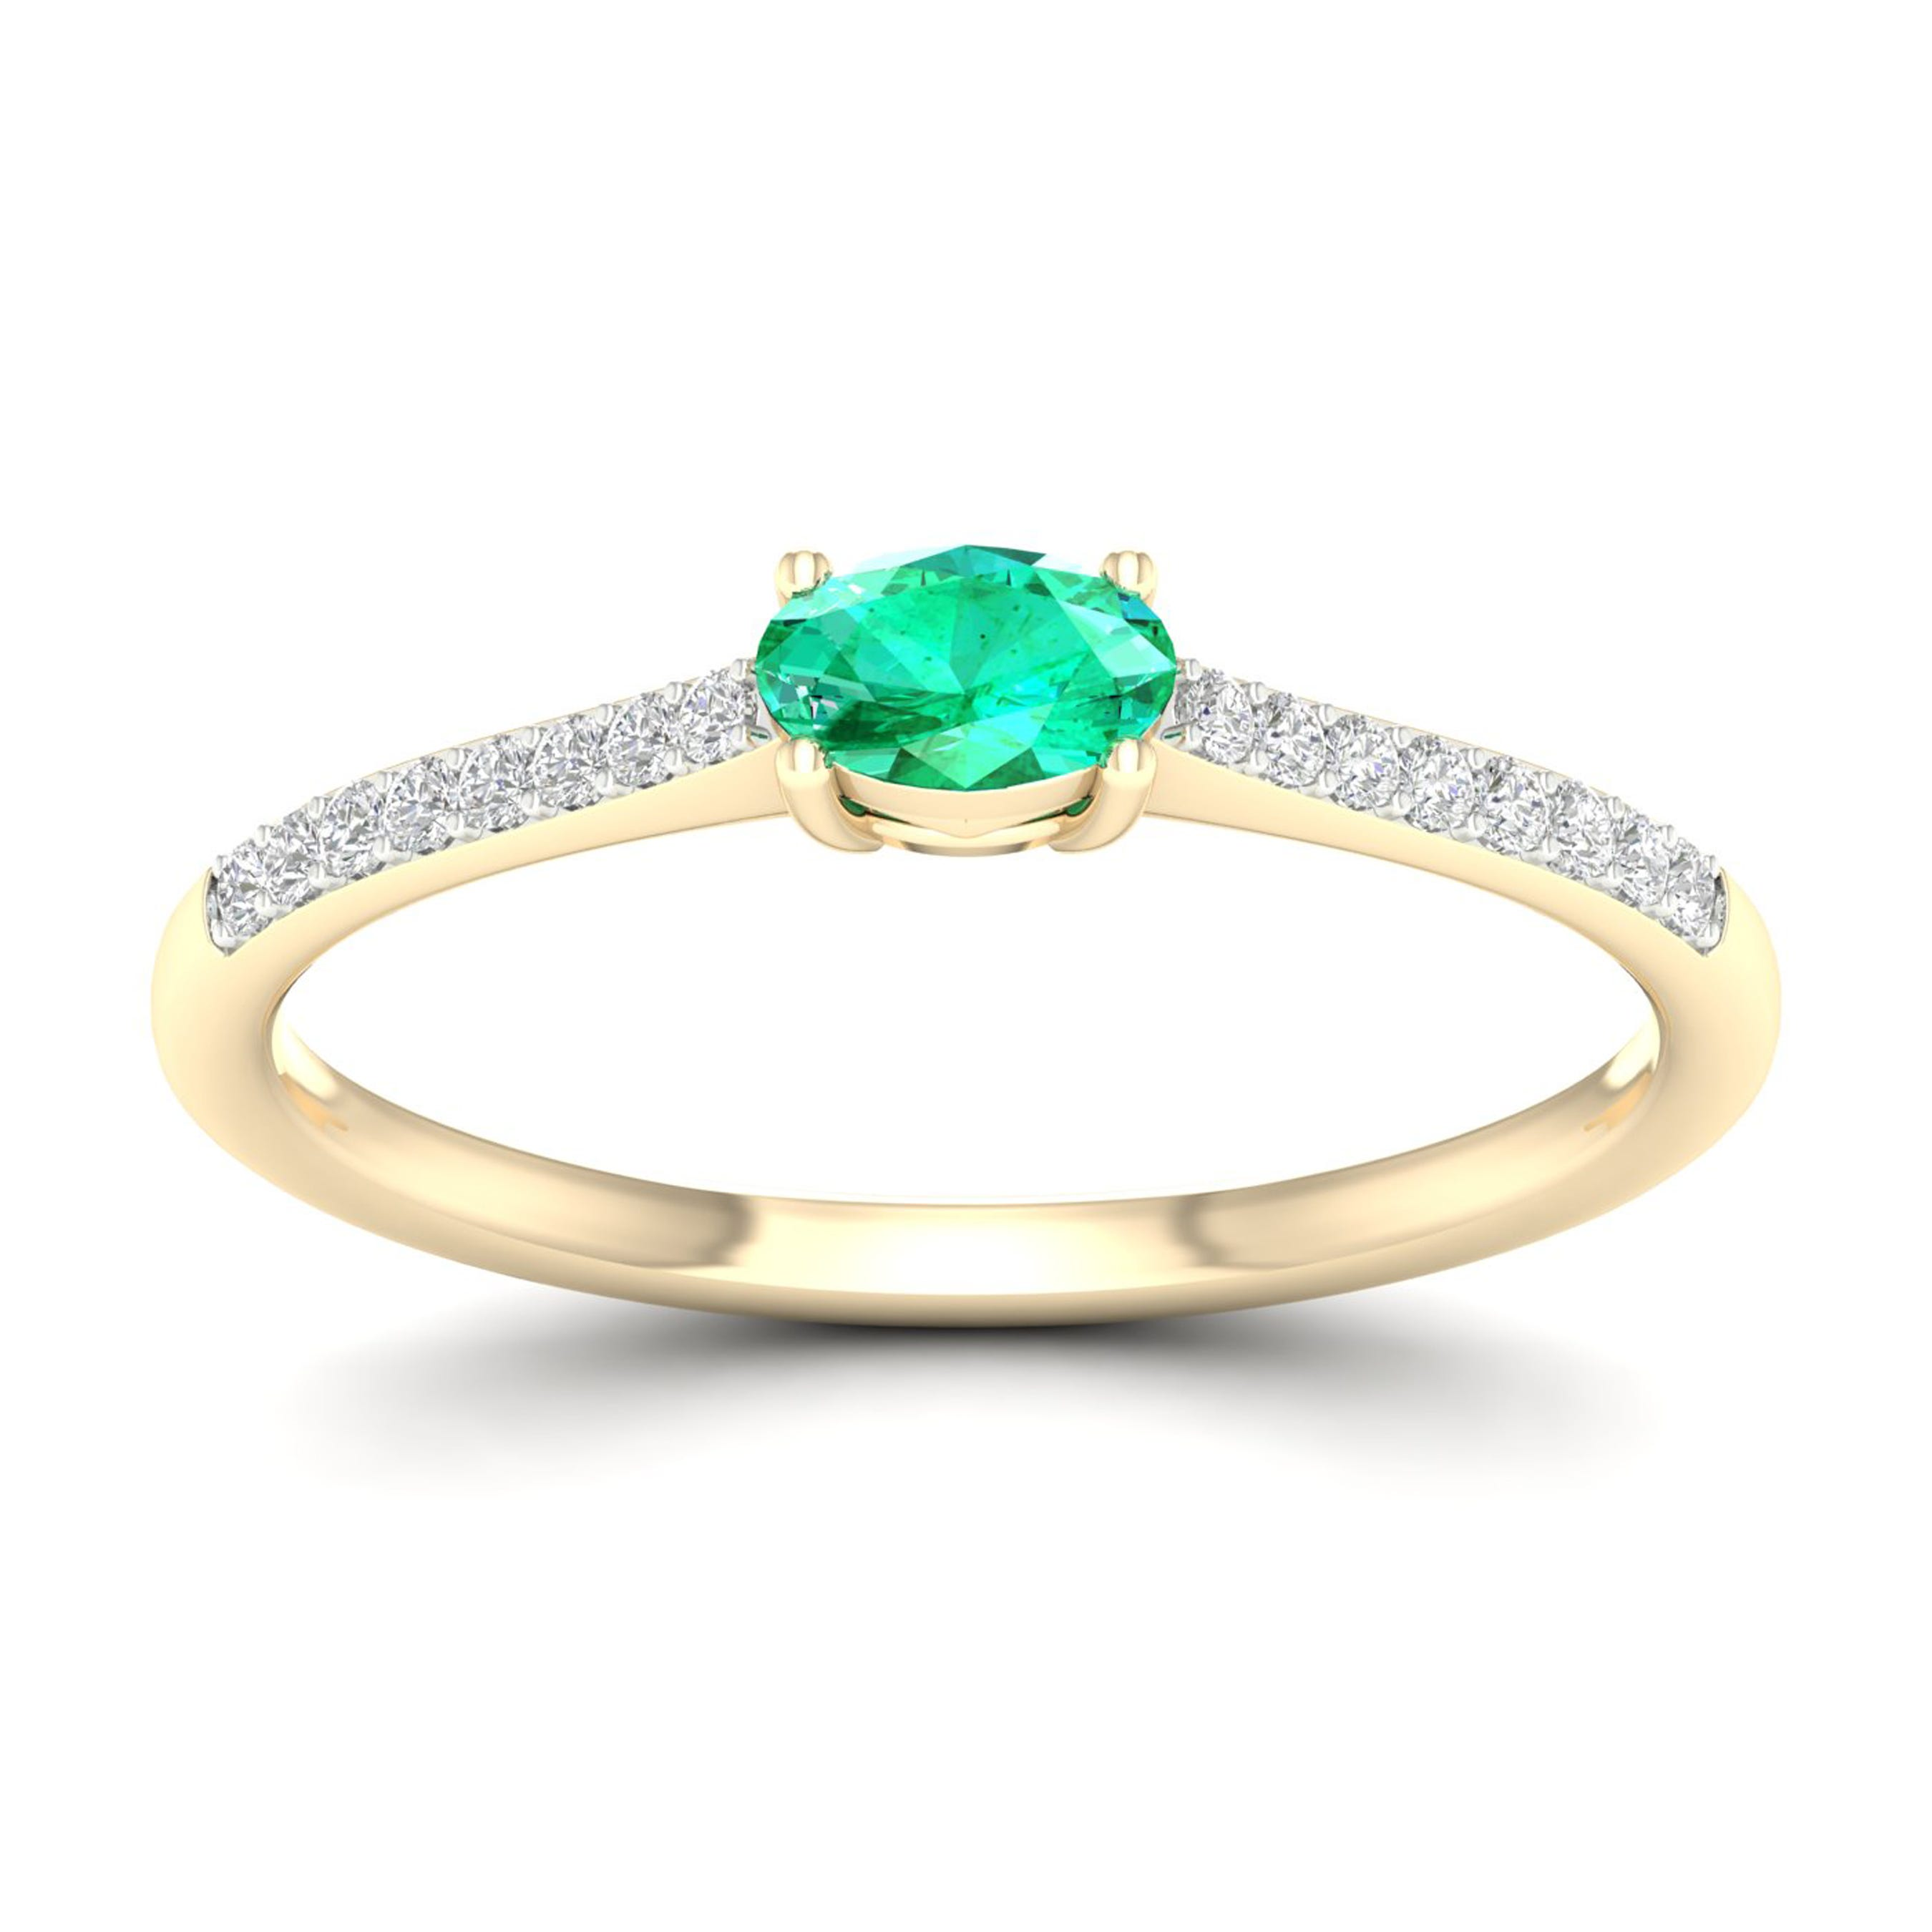 Oval Emerald Classic Ring in 10k Yellow Gold